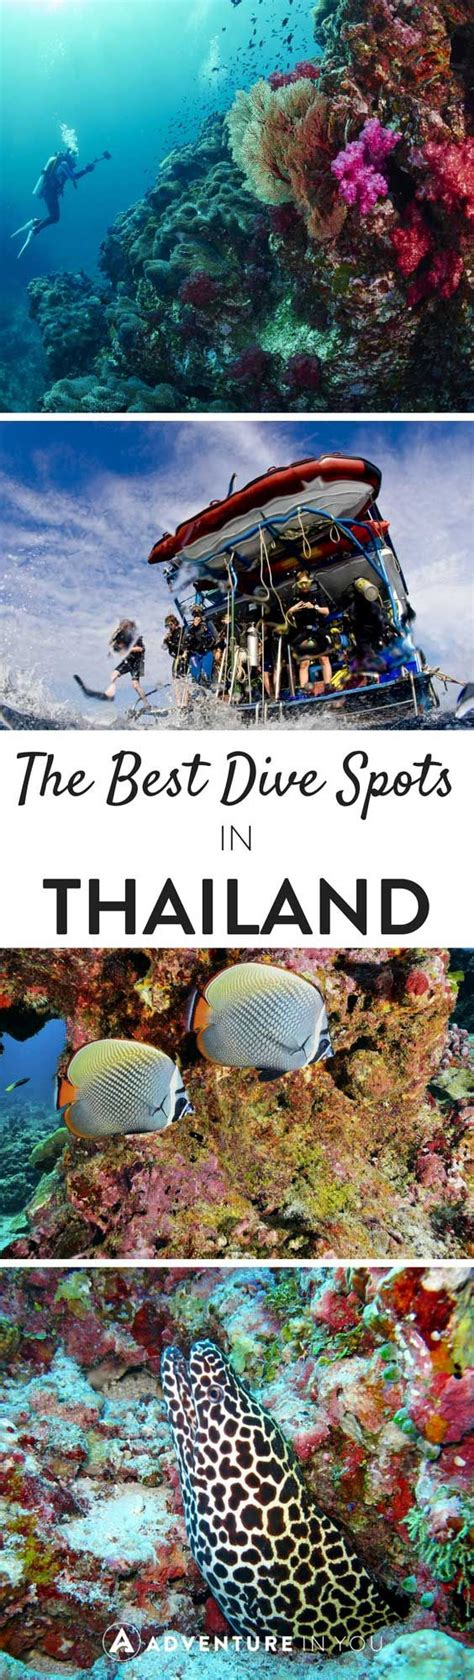 Best Scuba Diving in Thailand: Dive Sites You Just Can't